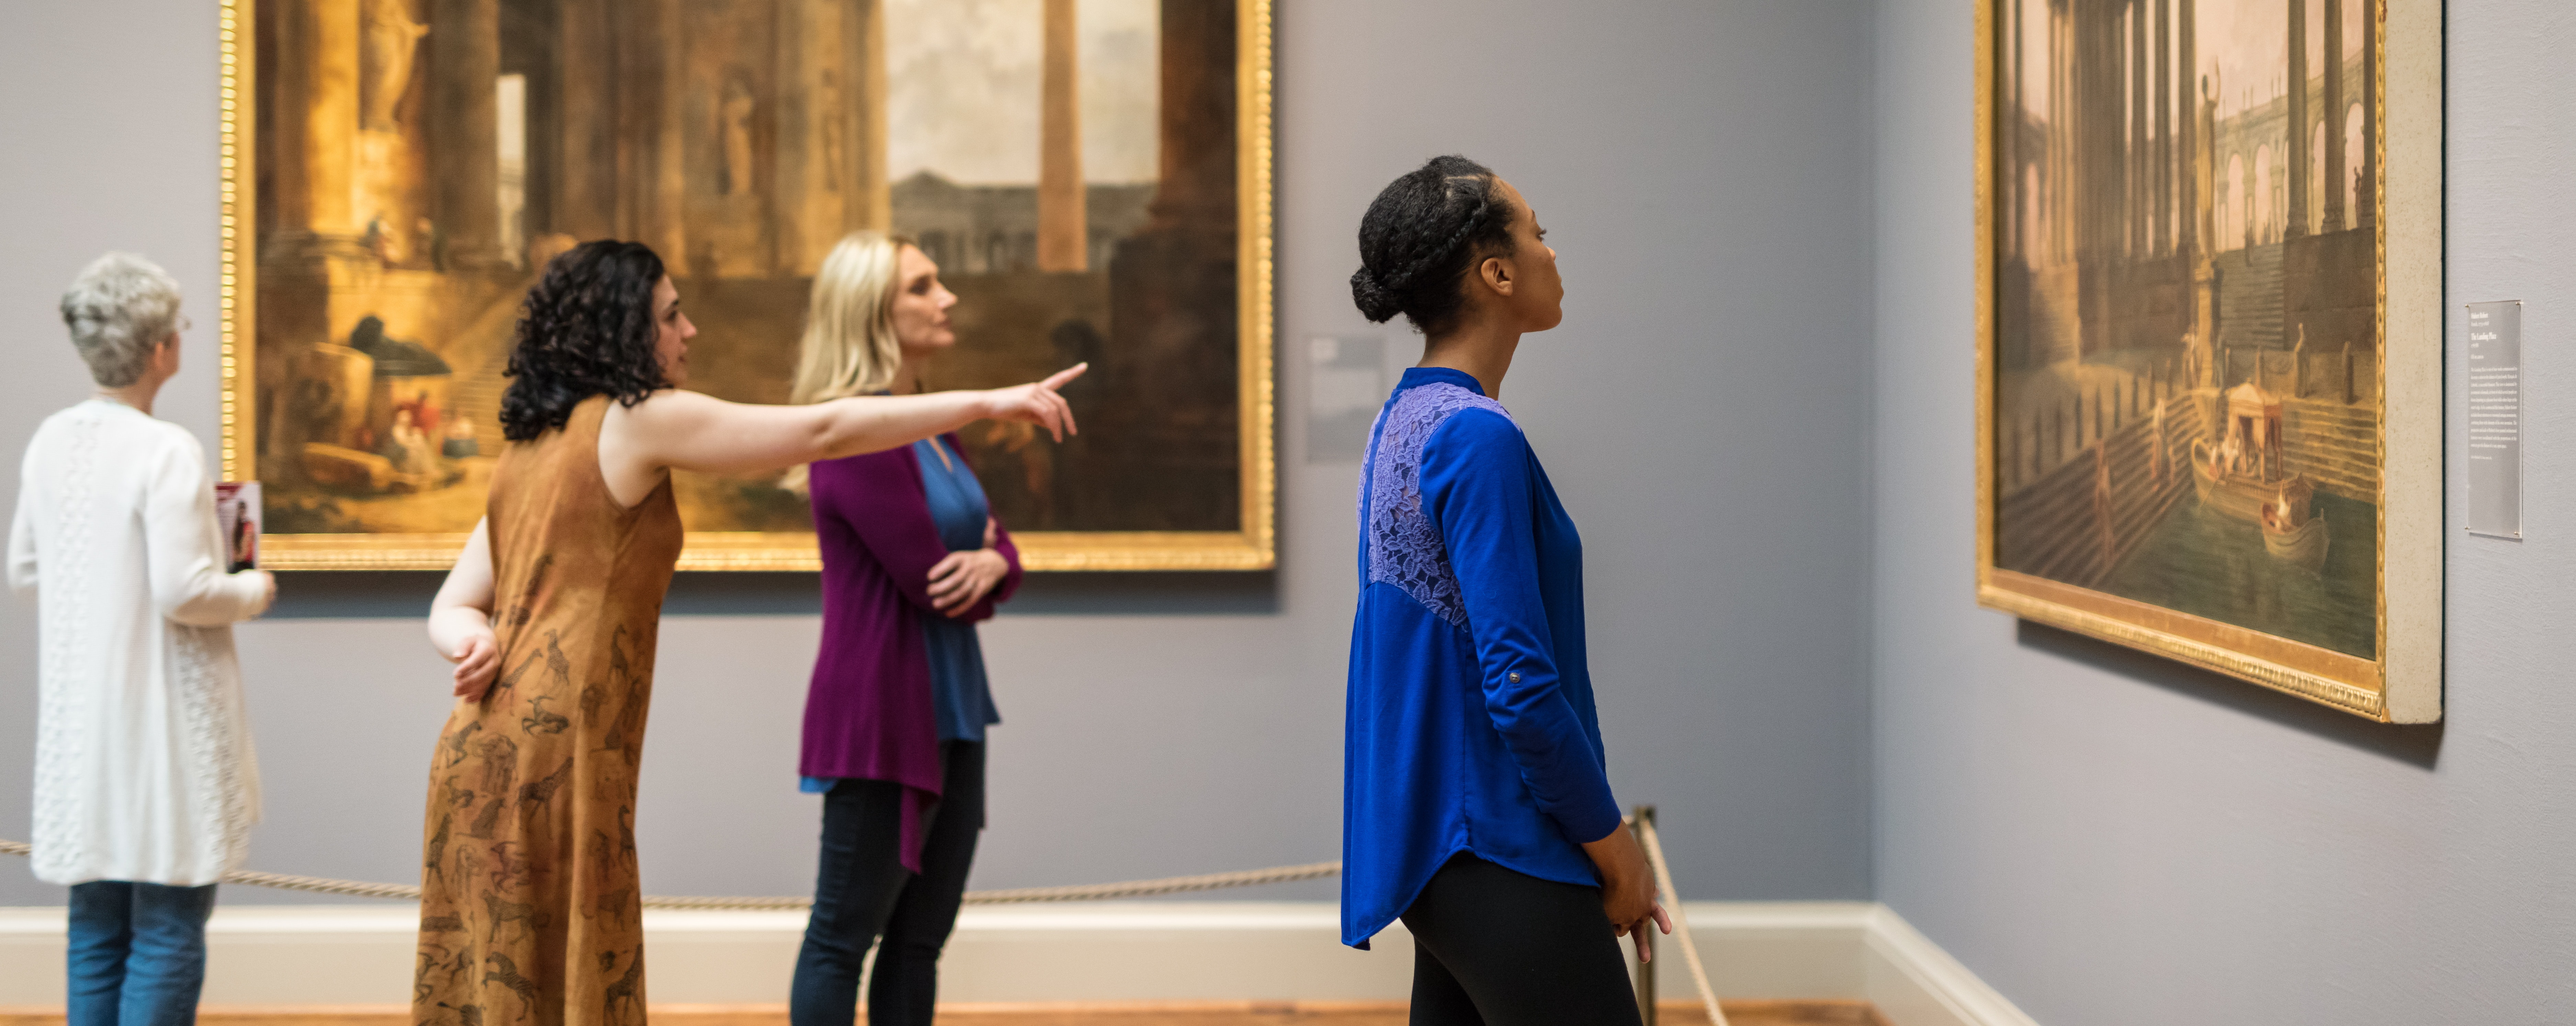 A group of women looking at classic artwork in the gallery